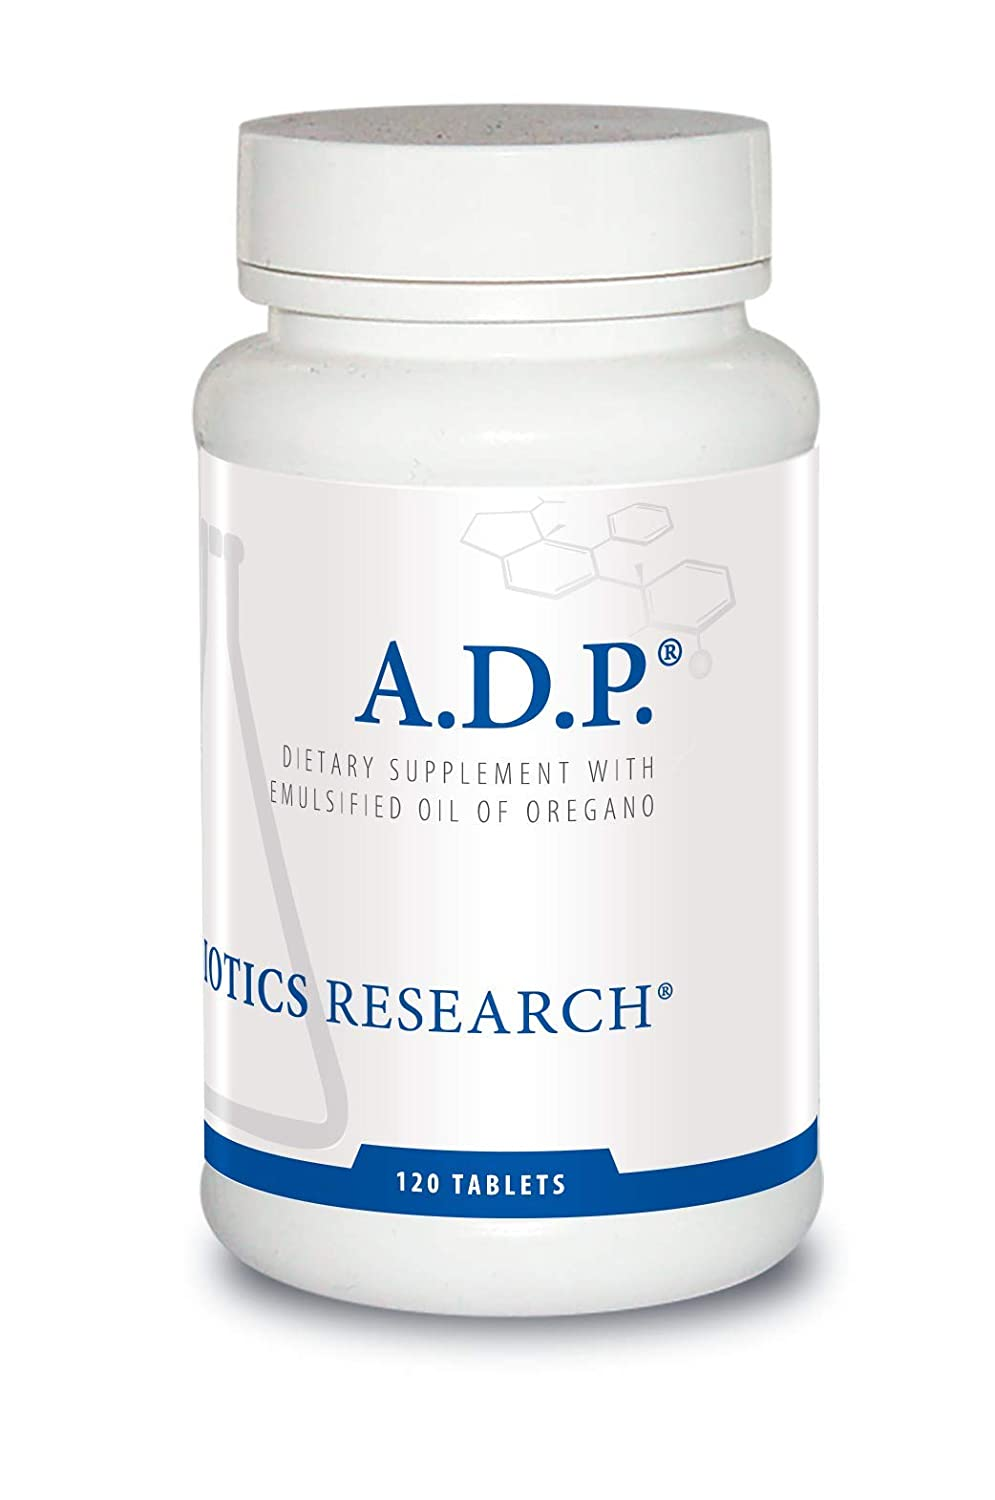 Biotics Research A.D.P. – Highly Concentrated Oil of Oregano, Optimal Absorption and Delivery. Antioxidant, Supports Microbial Balance